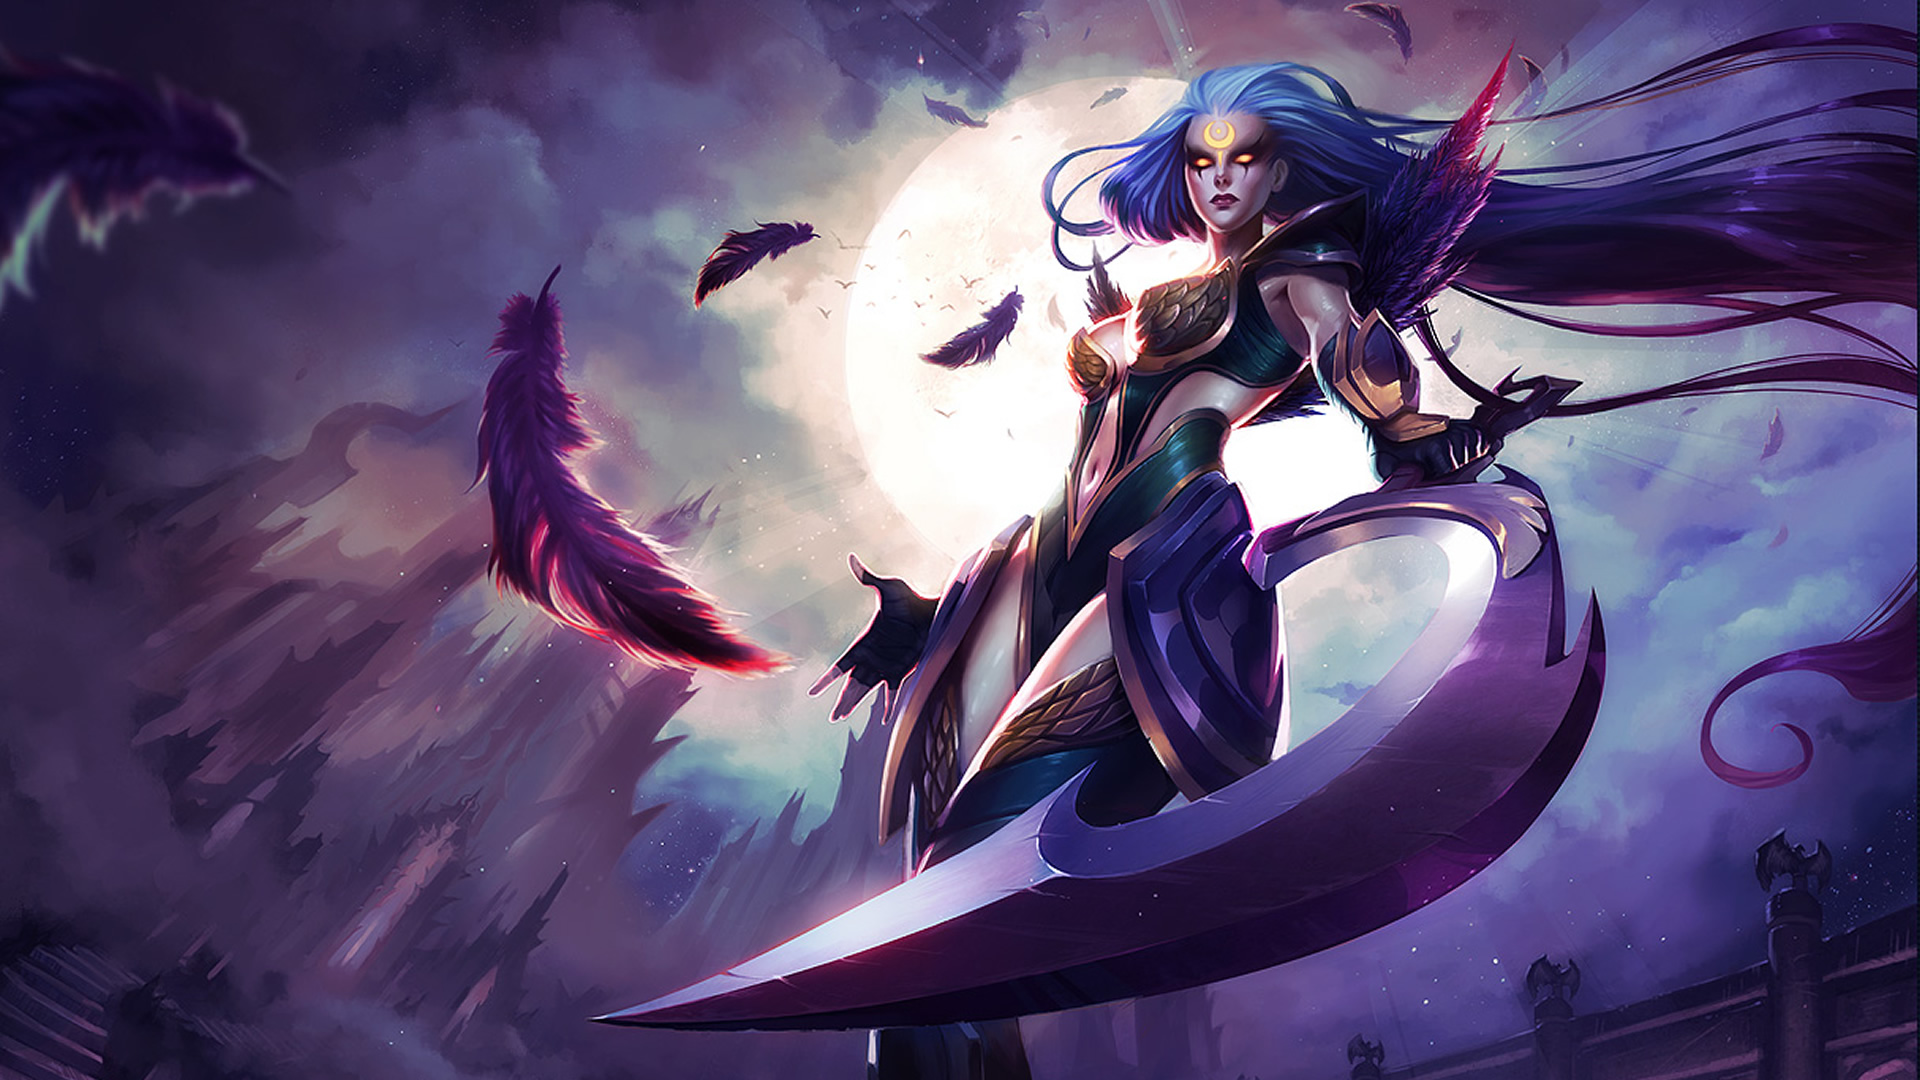 Dark Valkyrie Diana wallpaper